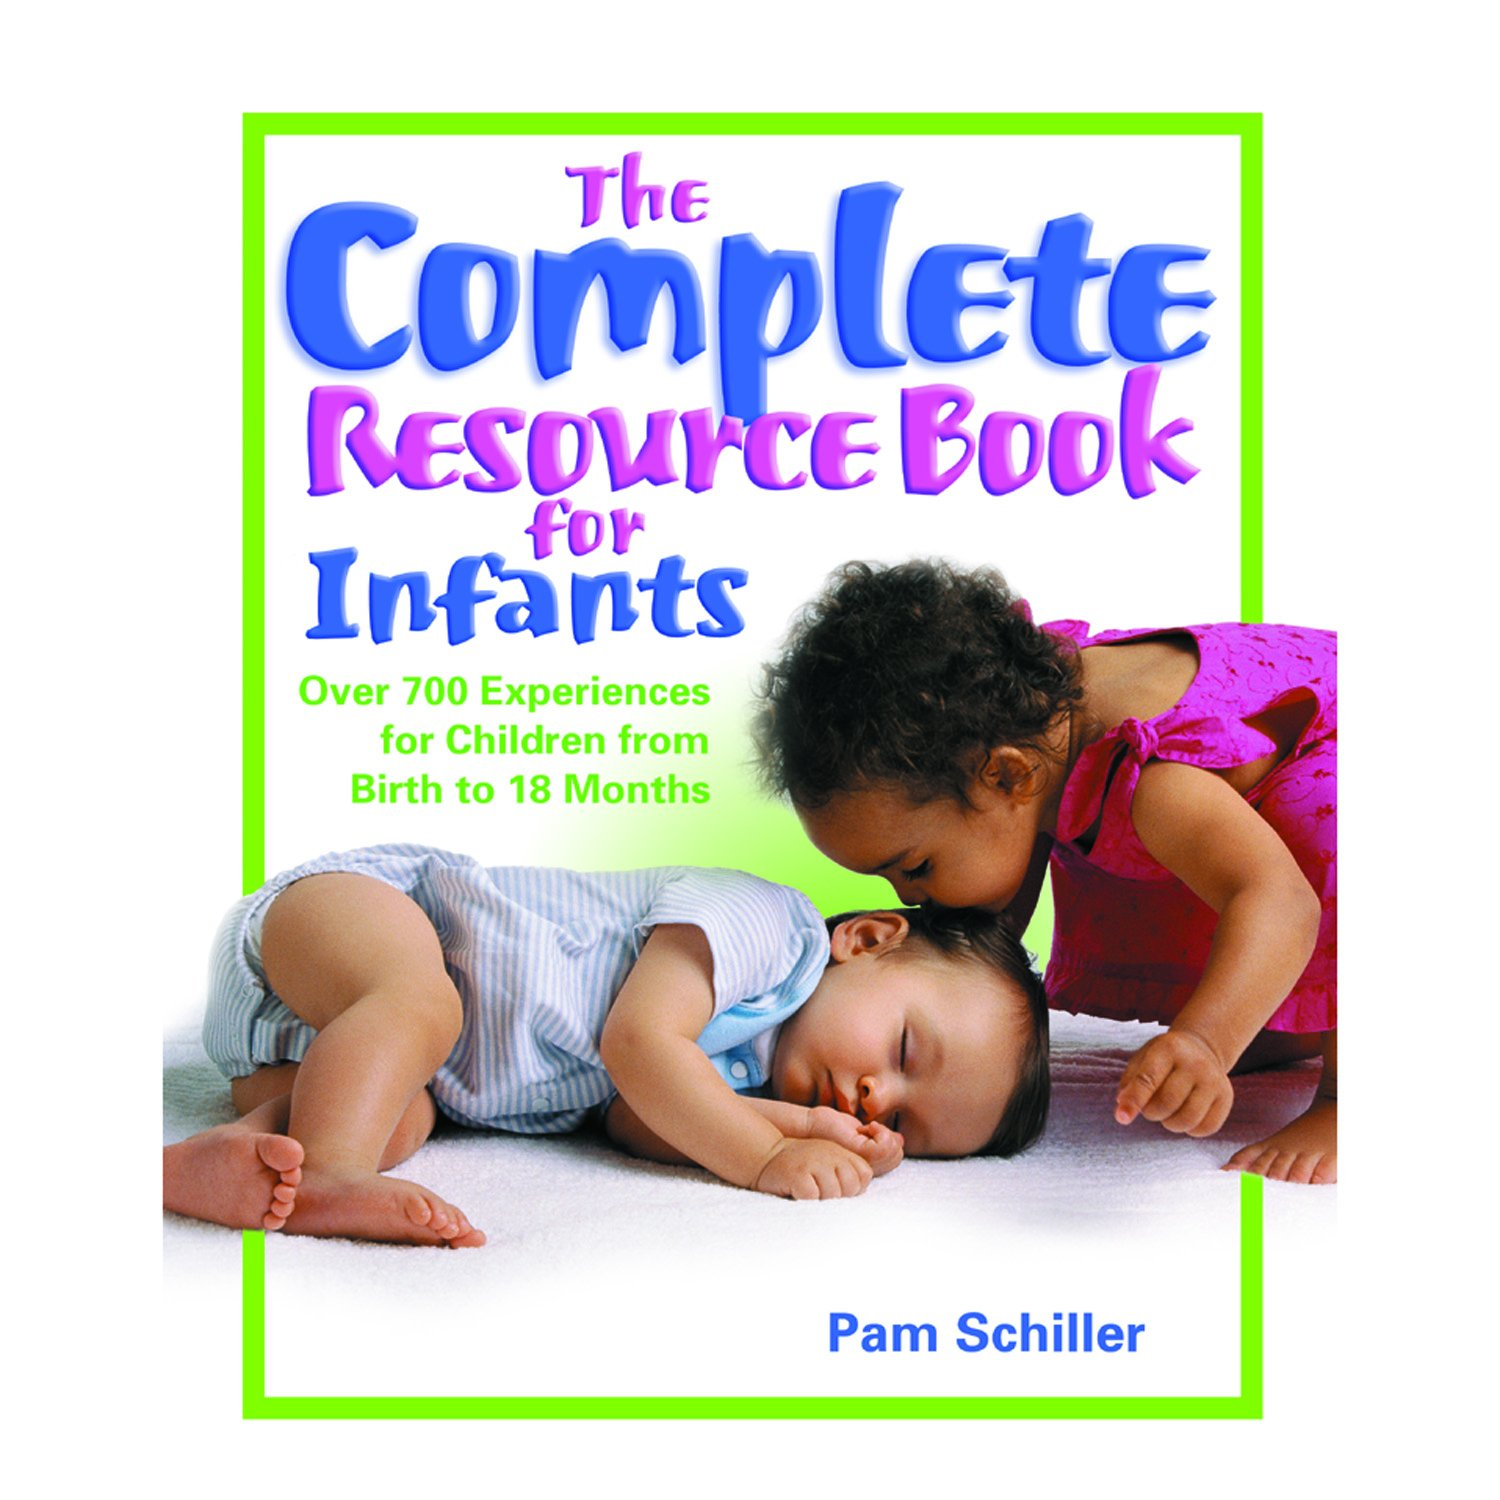 Download The Complete Resource Book for Infants: Over 700 Experiences for Children from Birth to 18 Months (Complete Resource Series) PDF